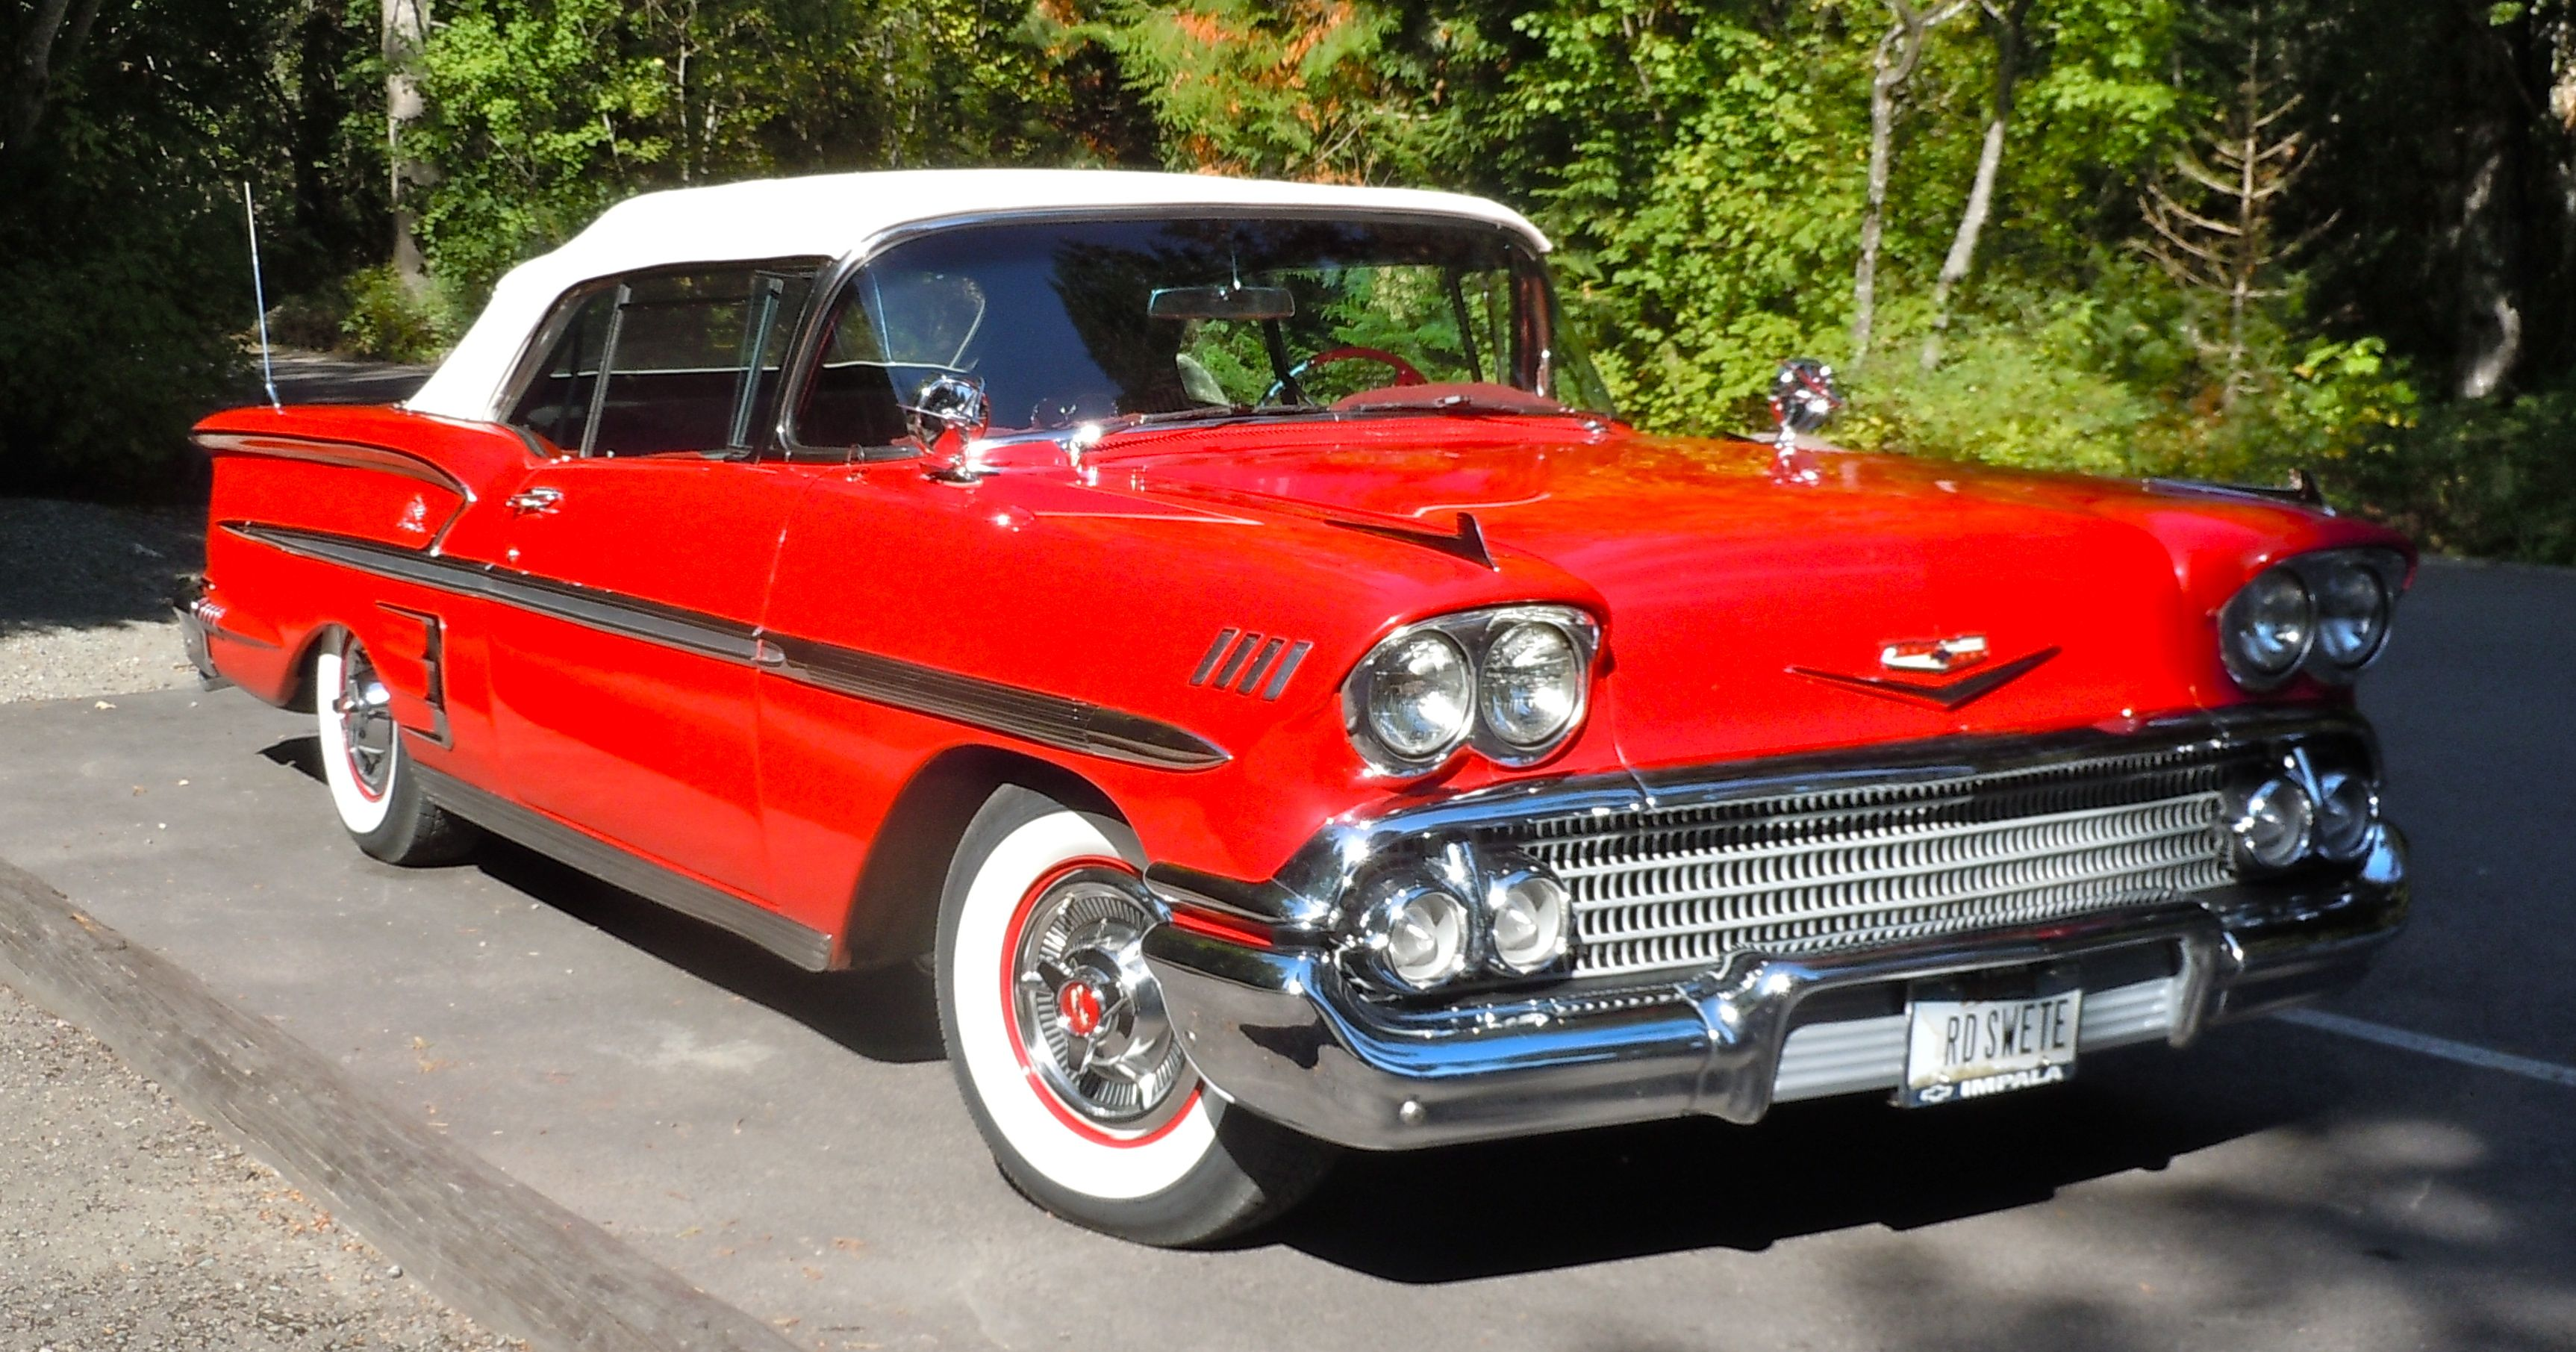 1958 Chevy Impala Maintenance of old vehicles: the material for new cogs/casters/gears/pads could be cast polyamide which I (Cast polyamide) can produce